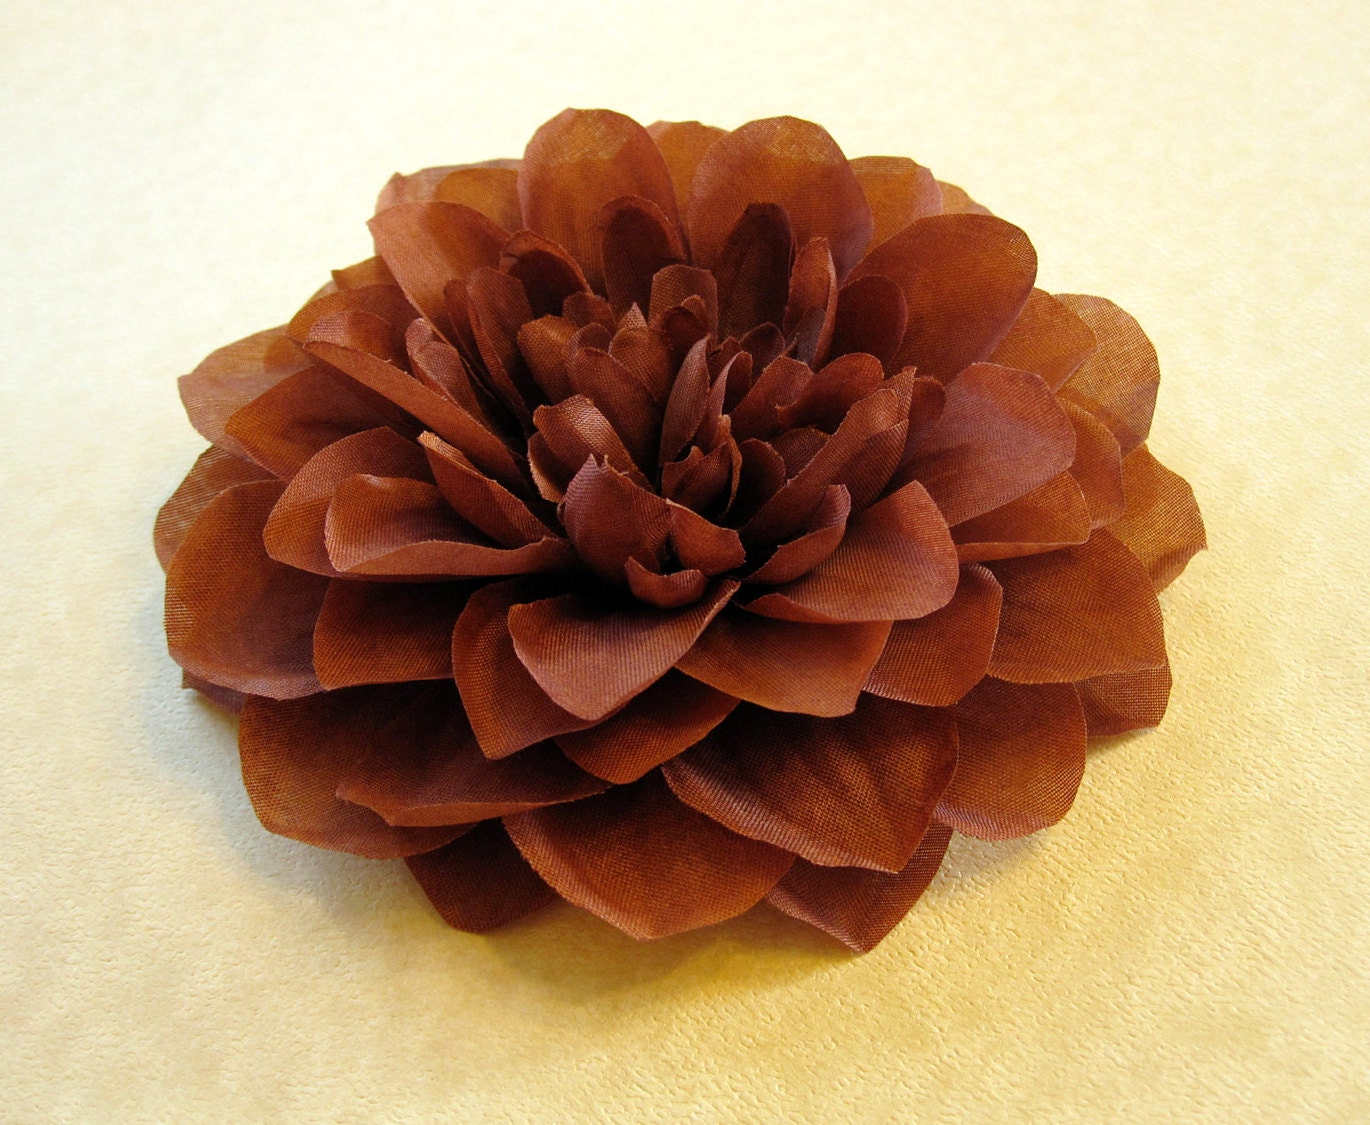 Fabric Flower Hair Accessory: Pin, Hair Clip, or Fascinator - Chocolate Brown Dahlia - Large - HairFair